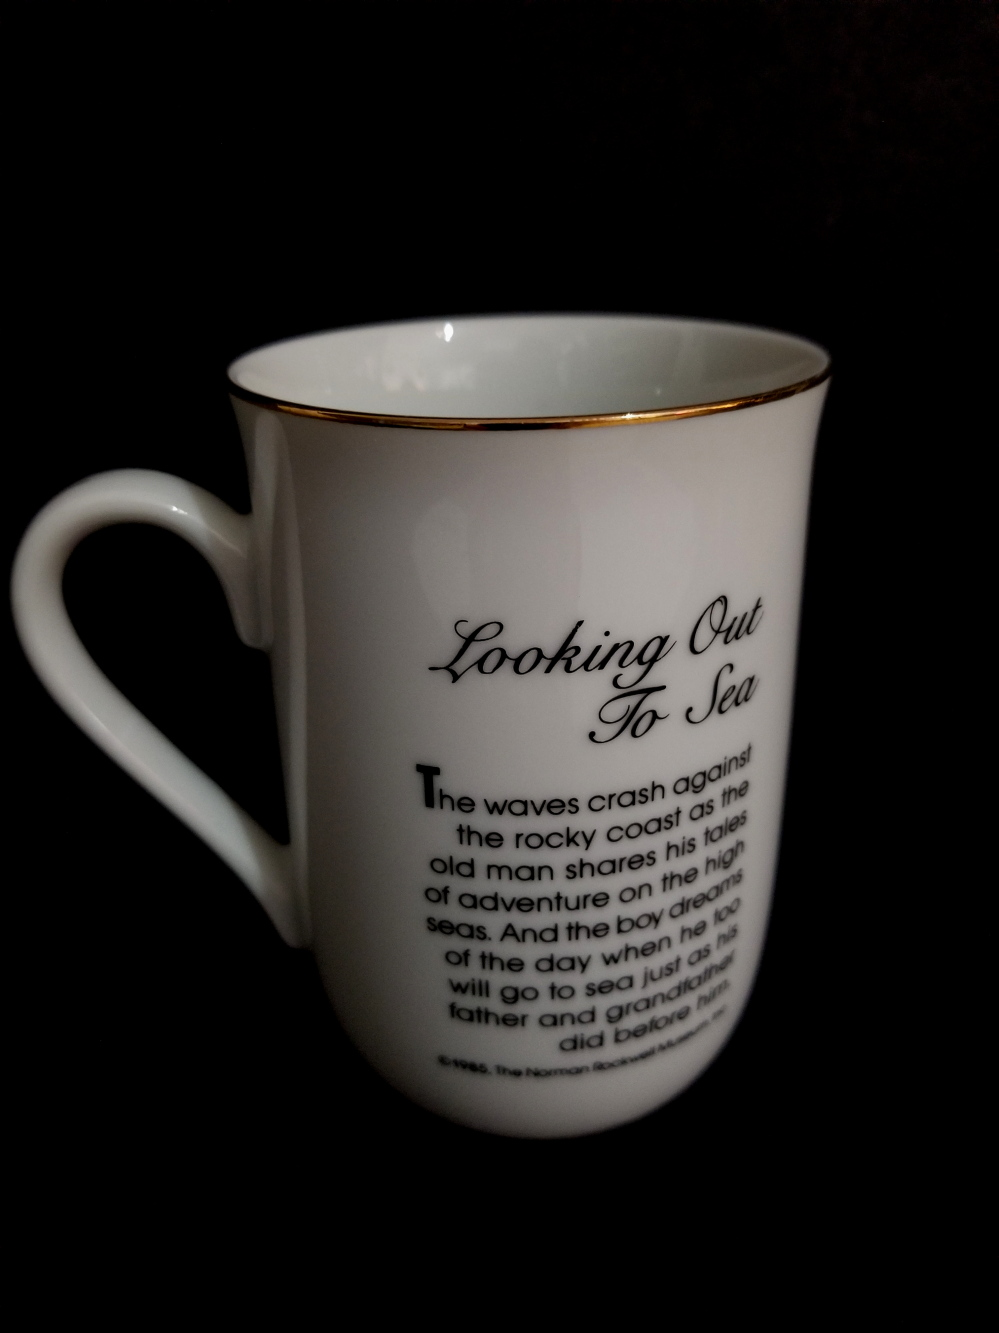 74a499bfd43 Porcelain Norman Rockwell Mug - Looking out to sea | Property Room